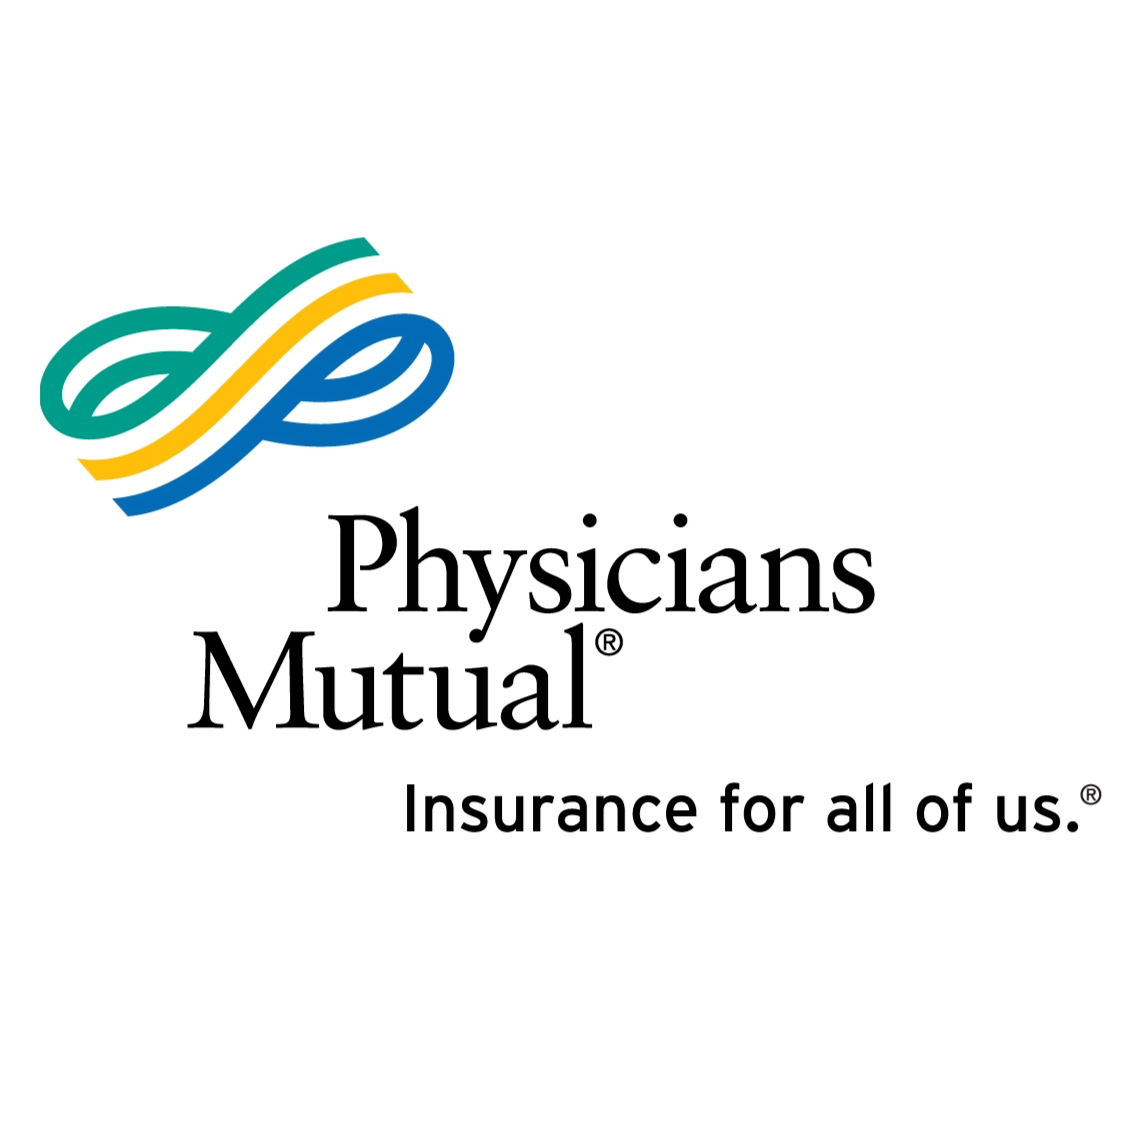 Allie Bickle: Physicians Mutual